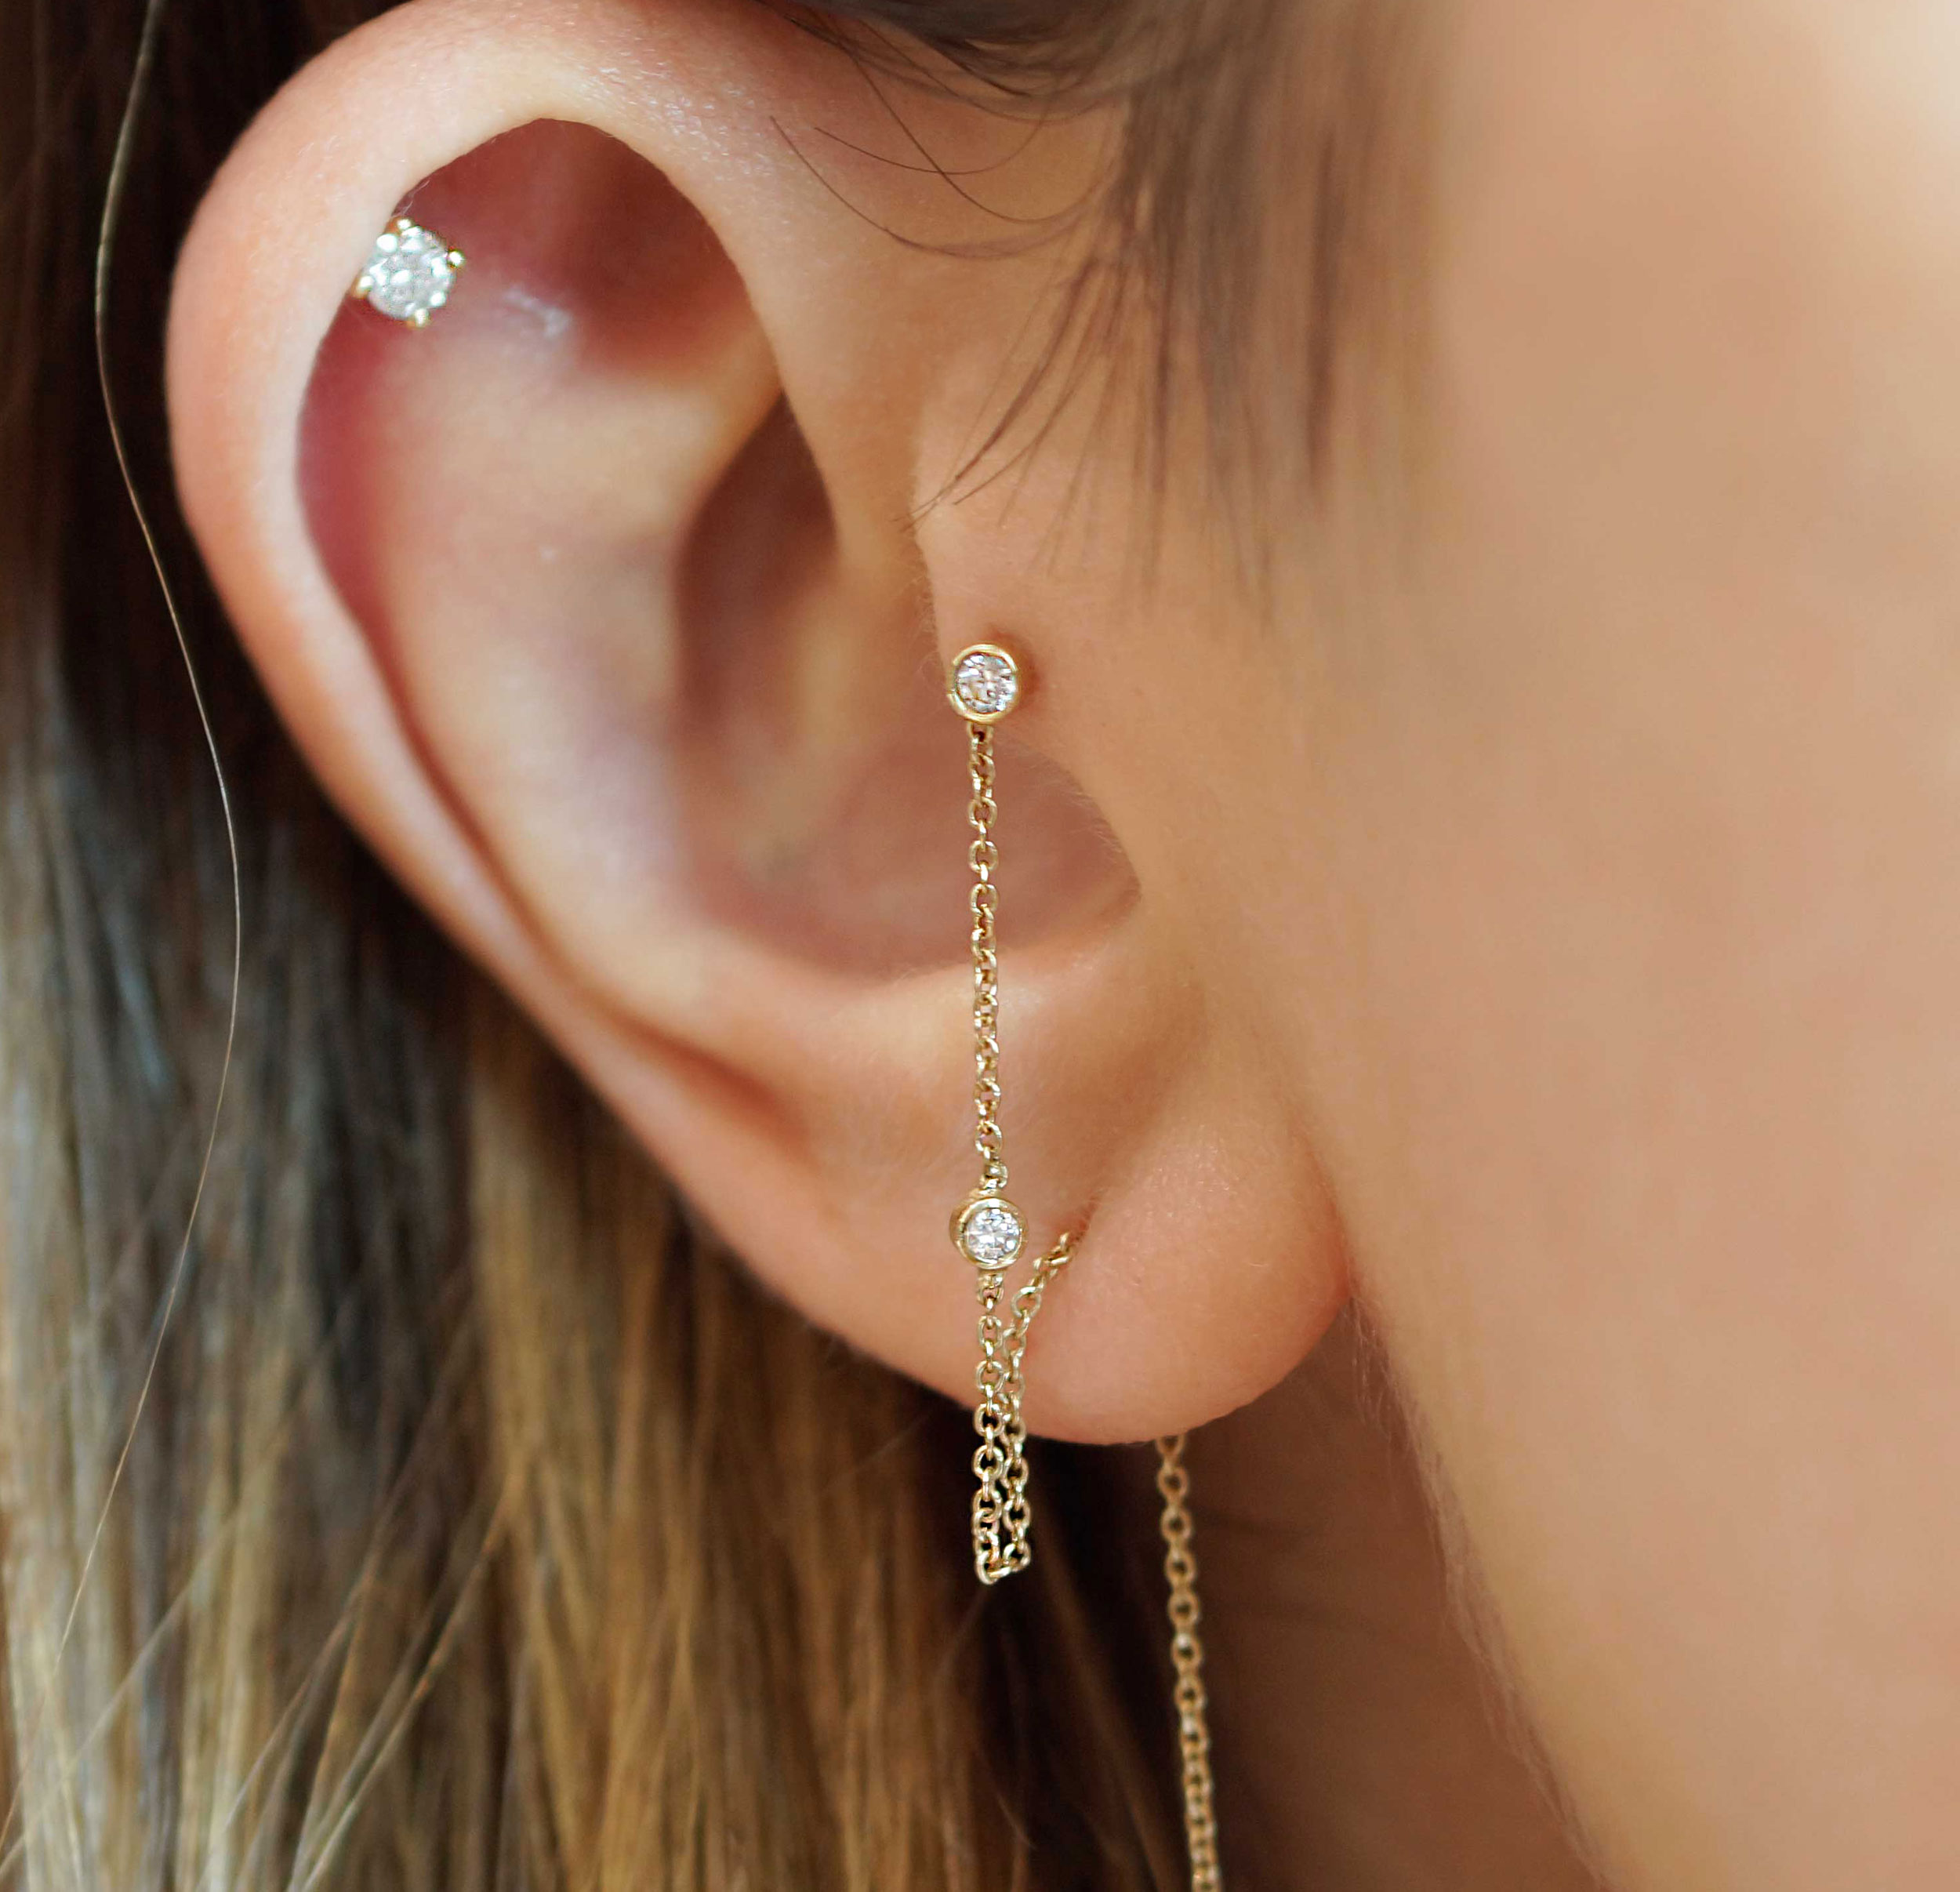 Where to buy golden piercing jewellery We make 18k solid gold cartilage earrings We sell golden piercing earring Buy fine piercing earrings reputable London's brand